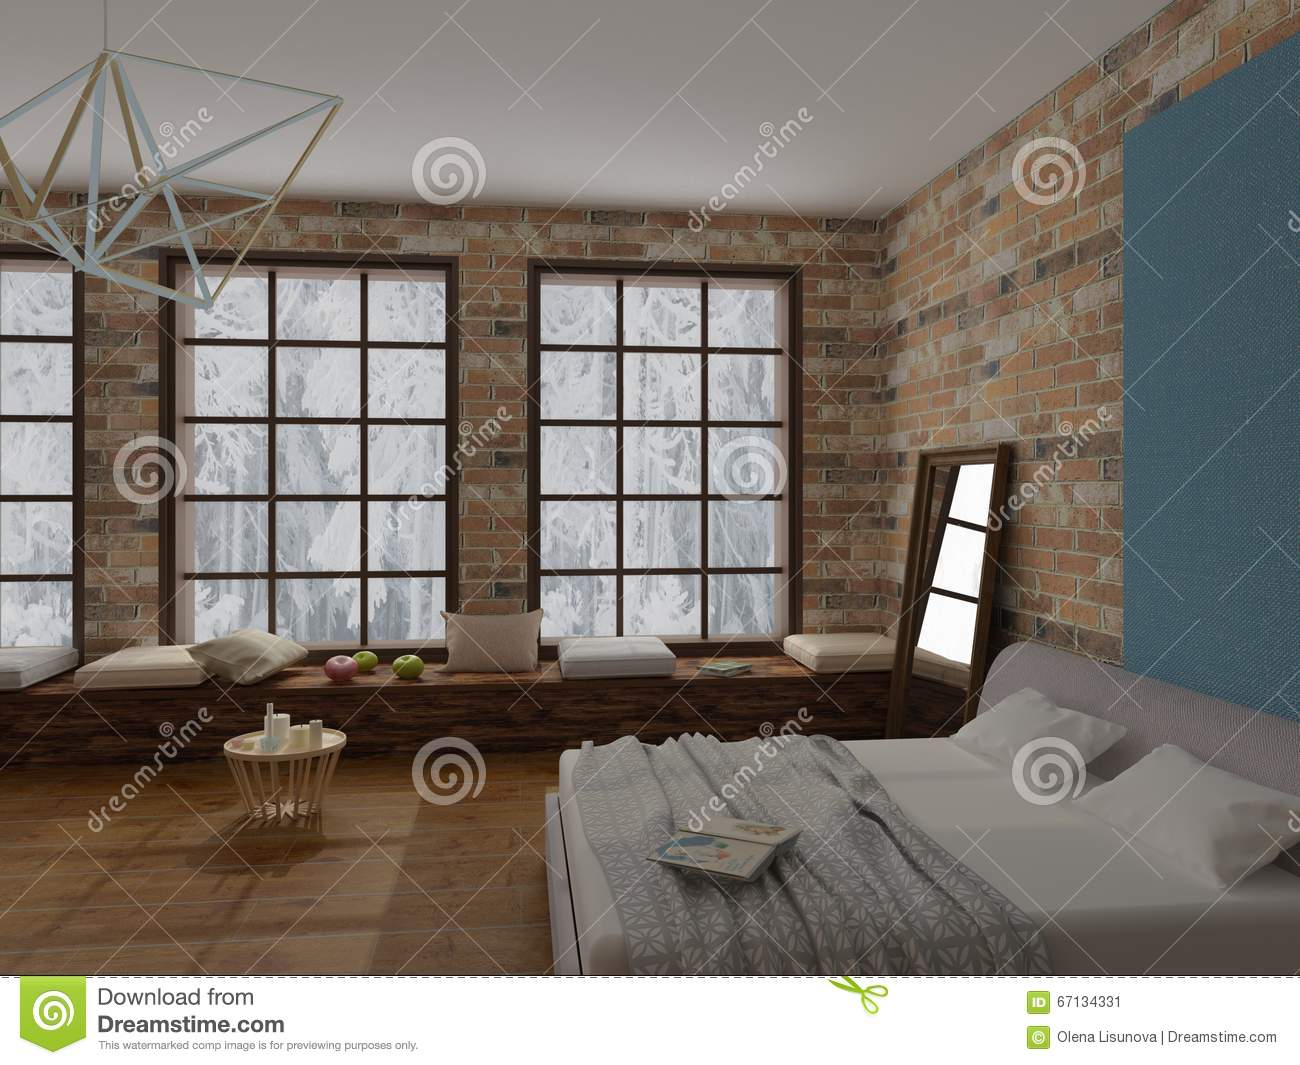 Cozy interior of loft bedroom with large gray soft bed brick walls large window with winter view shelves pillows mirror candles romantic mood & Rendering Of Cozy Interior Of Bedroom In Loft Style With Brick Wall ...